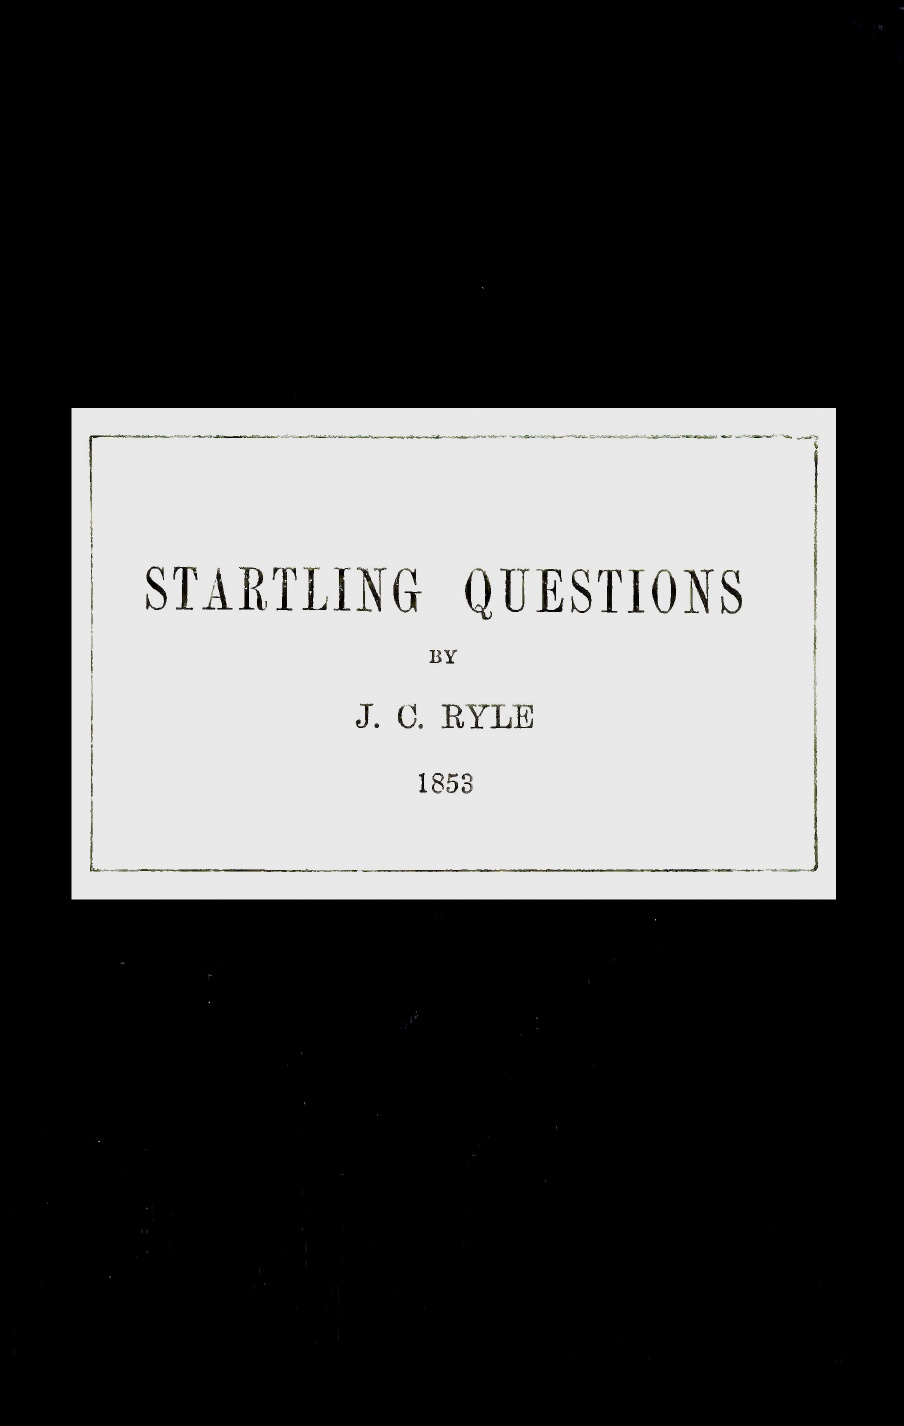 J. C. Ryle-Startling Questions-